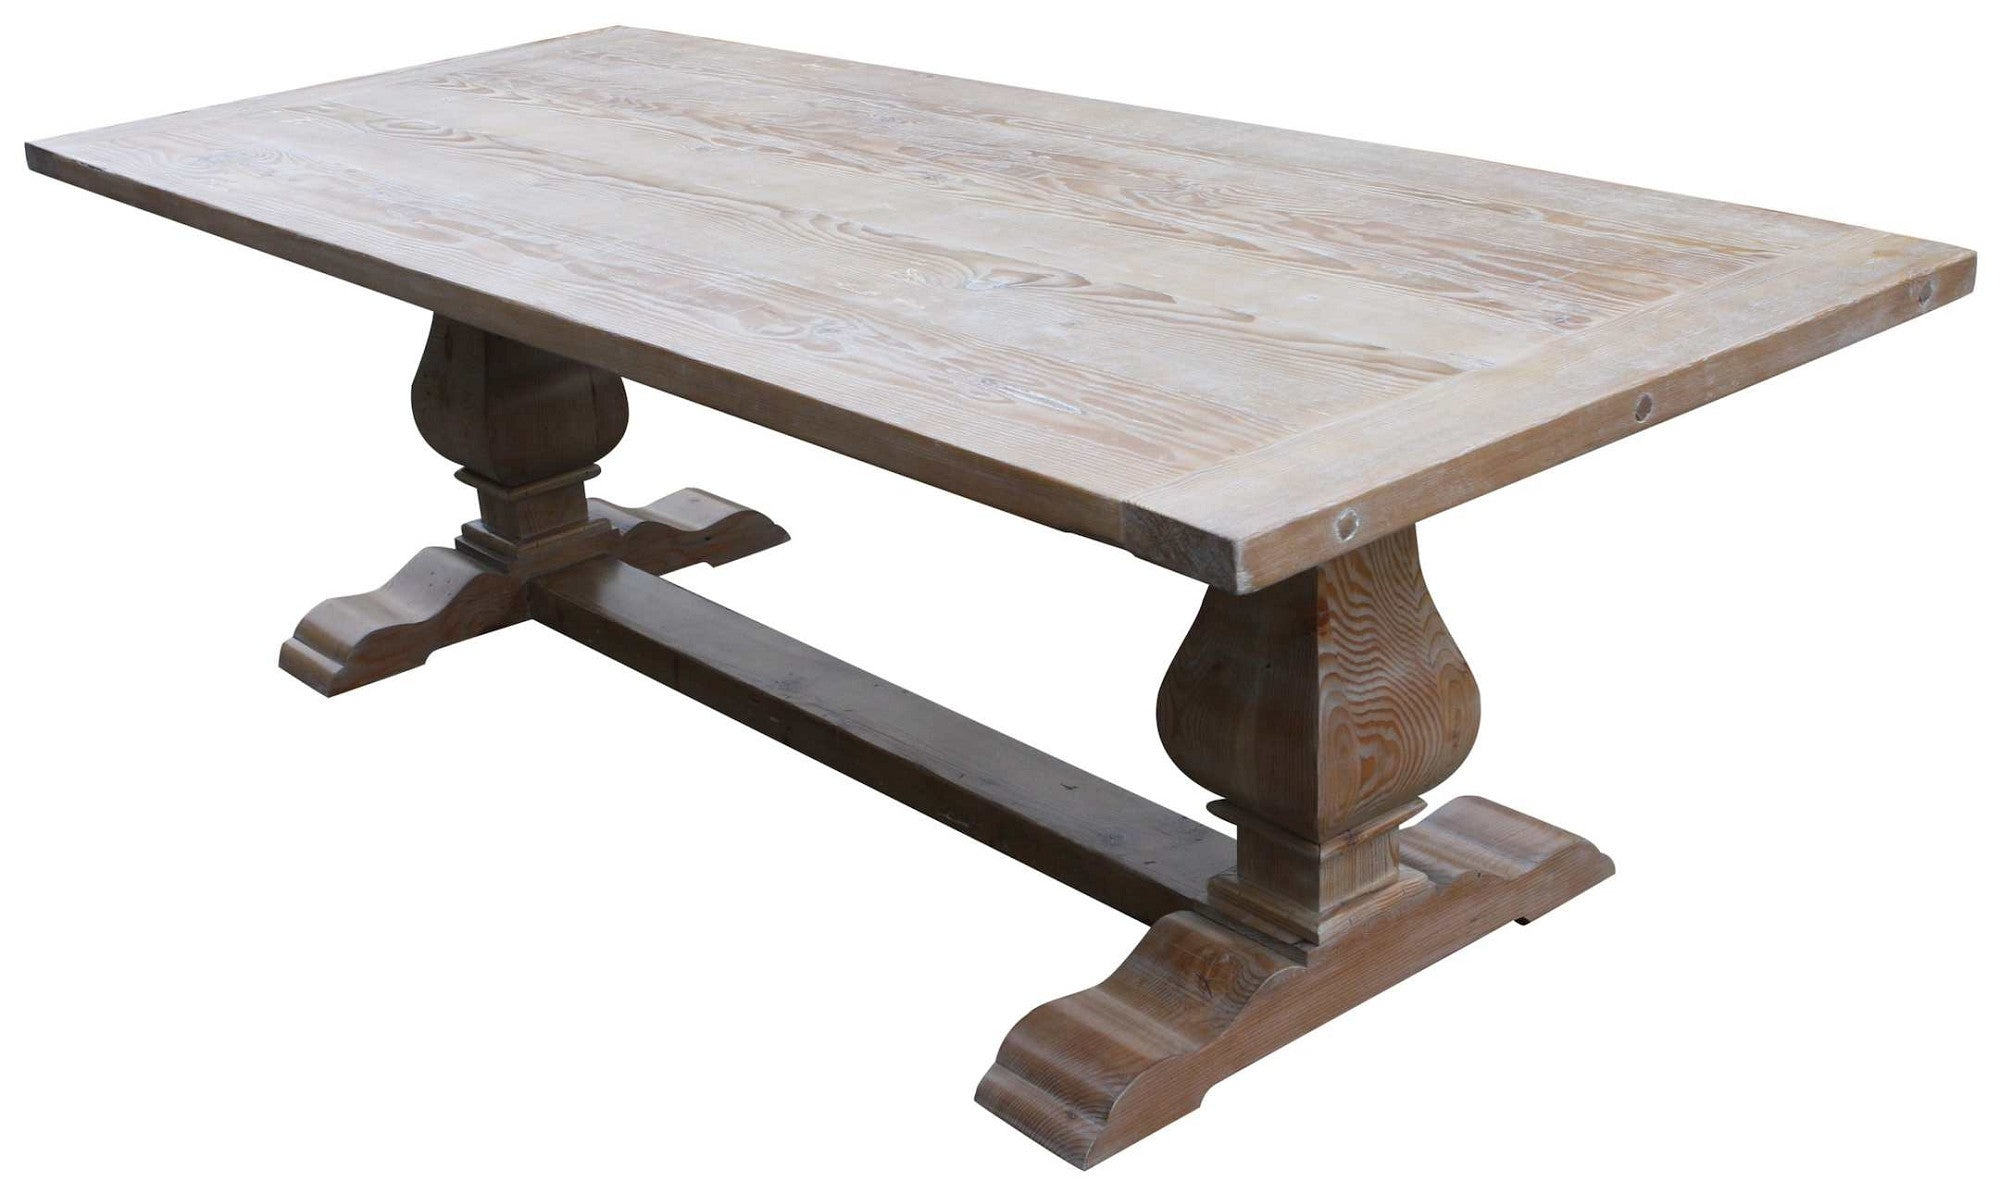 Custom Dining Tables Handmade From Traditional Trestle Tables Leaf